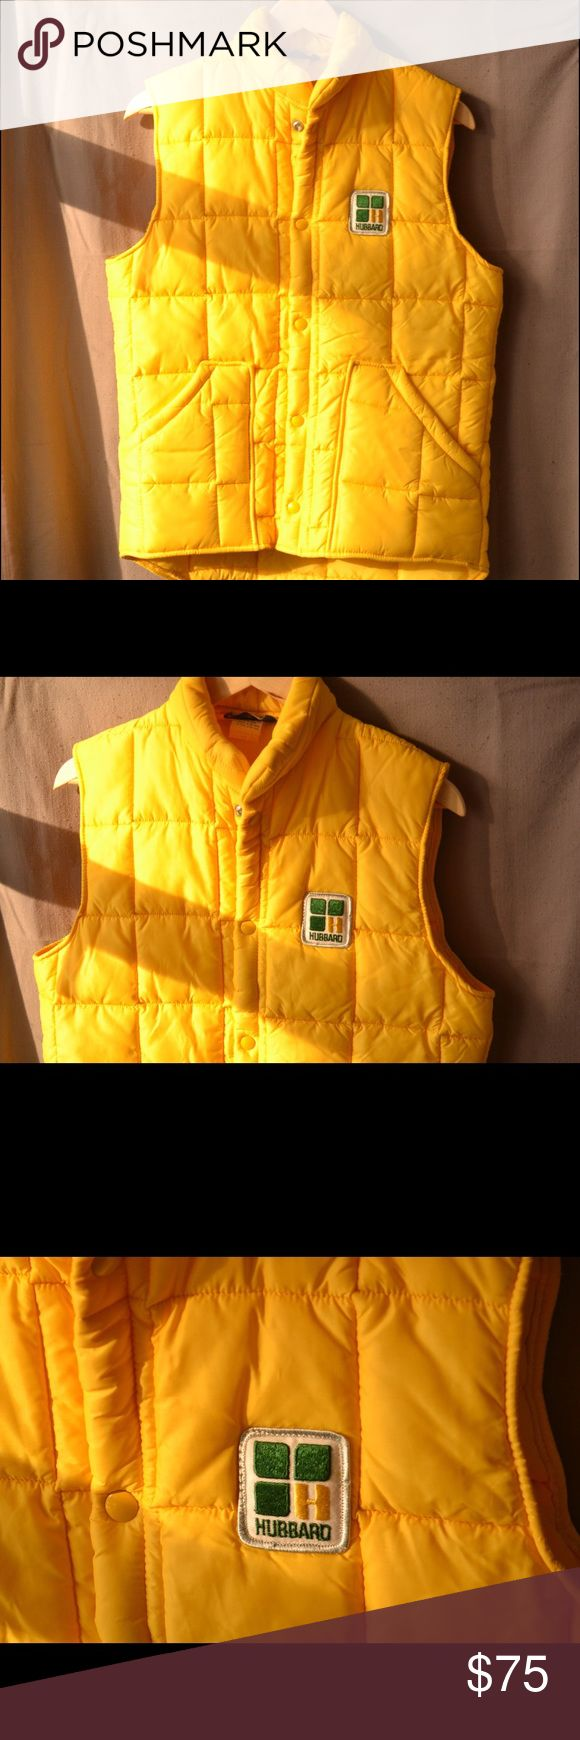 70's / Vintage Time Capsule Hubbard Yellow Vest, S This speaks for itself, perfectly preserved like it came from a time capsule--should be in a fashion museum. Not a single mark on it. Killer Hubbard patch. Made in the U.S.A. Vintage Jackets & Coats Vests